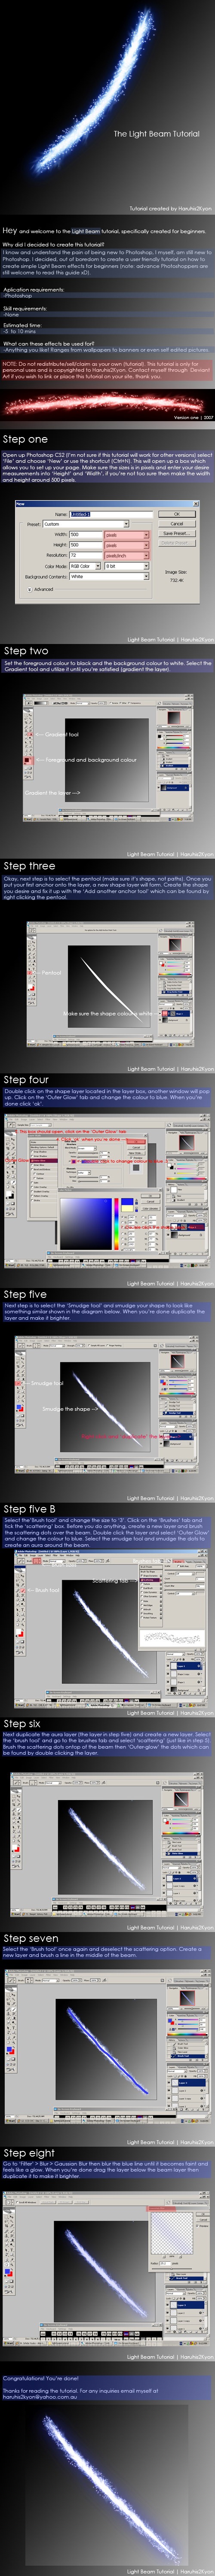 Light Beam Photoshop Tutorial by haruhis2kyon